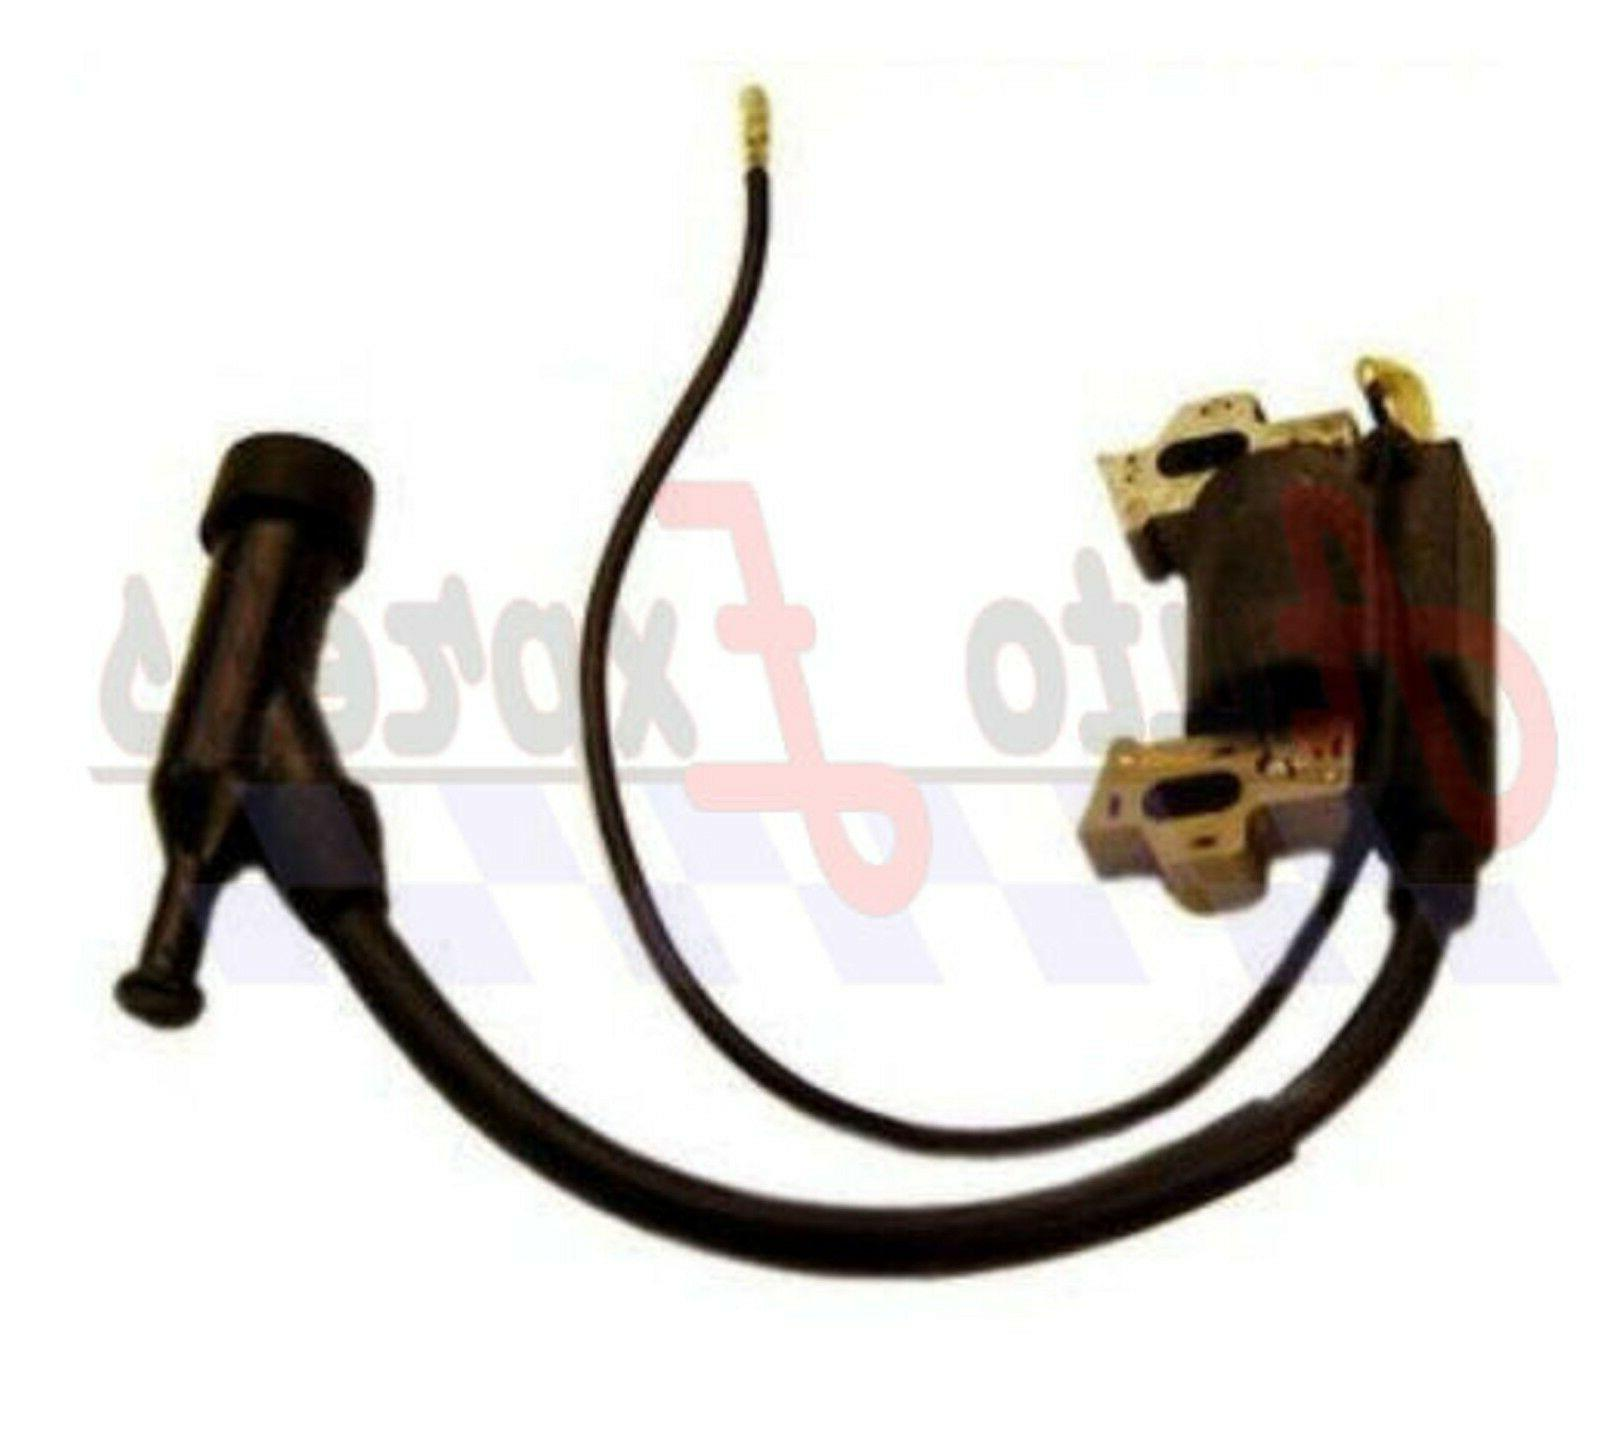 hight resolution of new ignition coil fits honda gx160 gx200 5 5hp 6 5hp